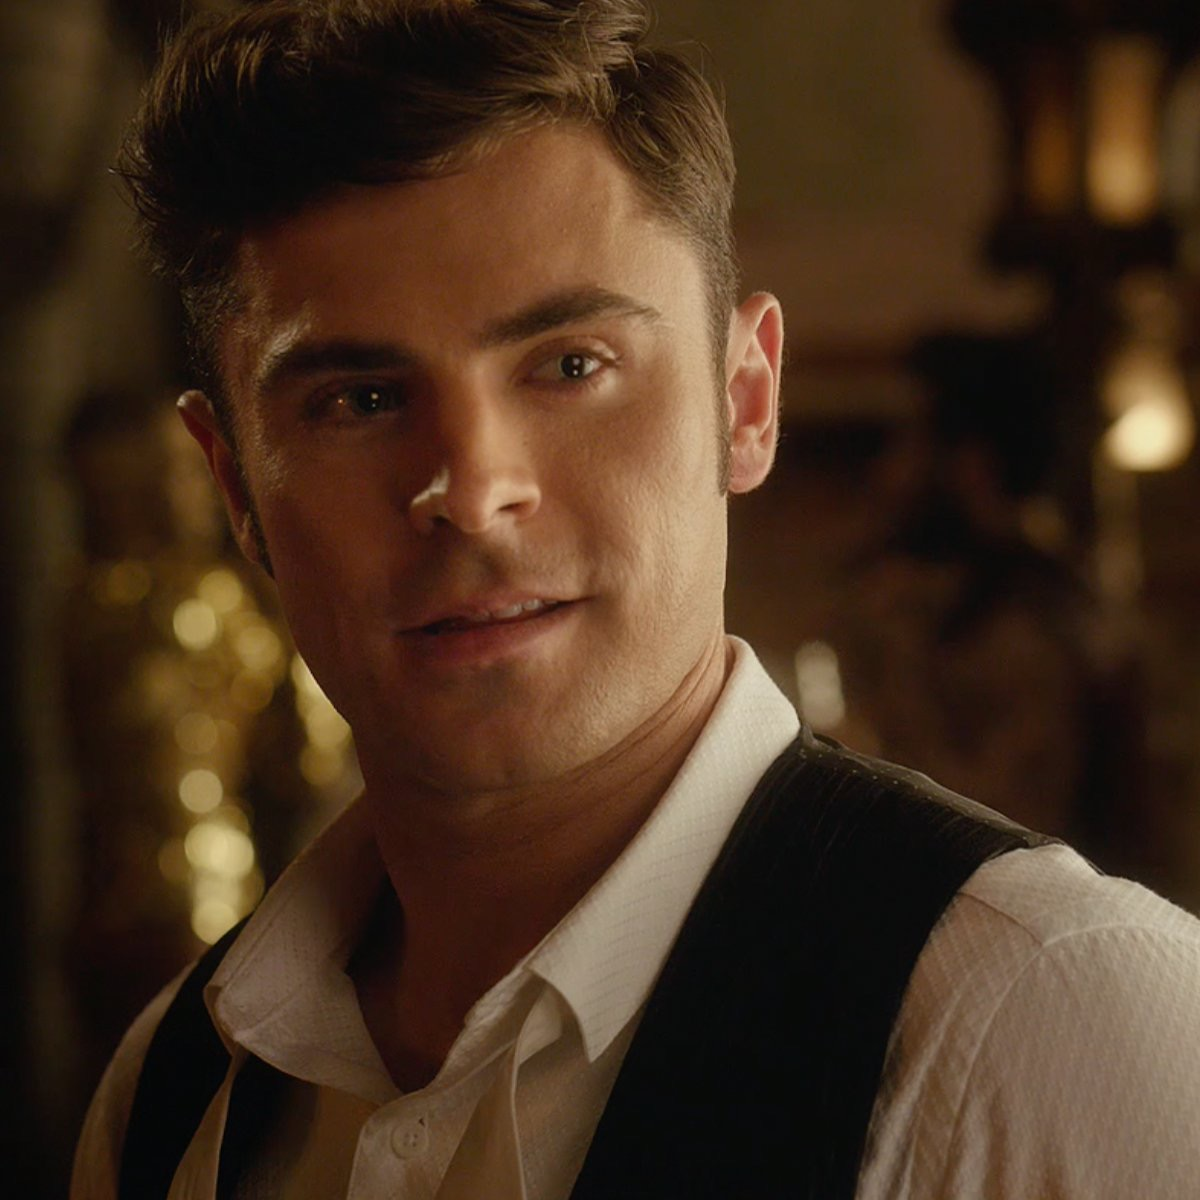 Zac Efron in The Greatest Showman (2017)